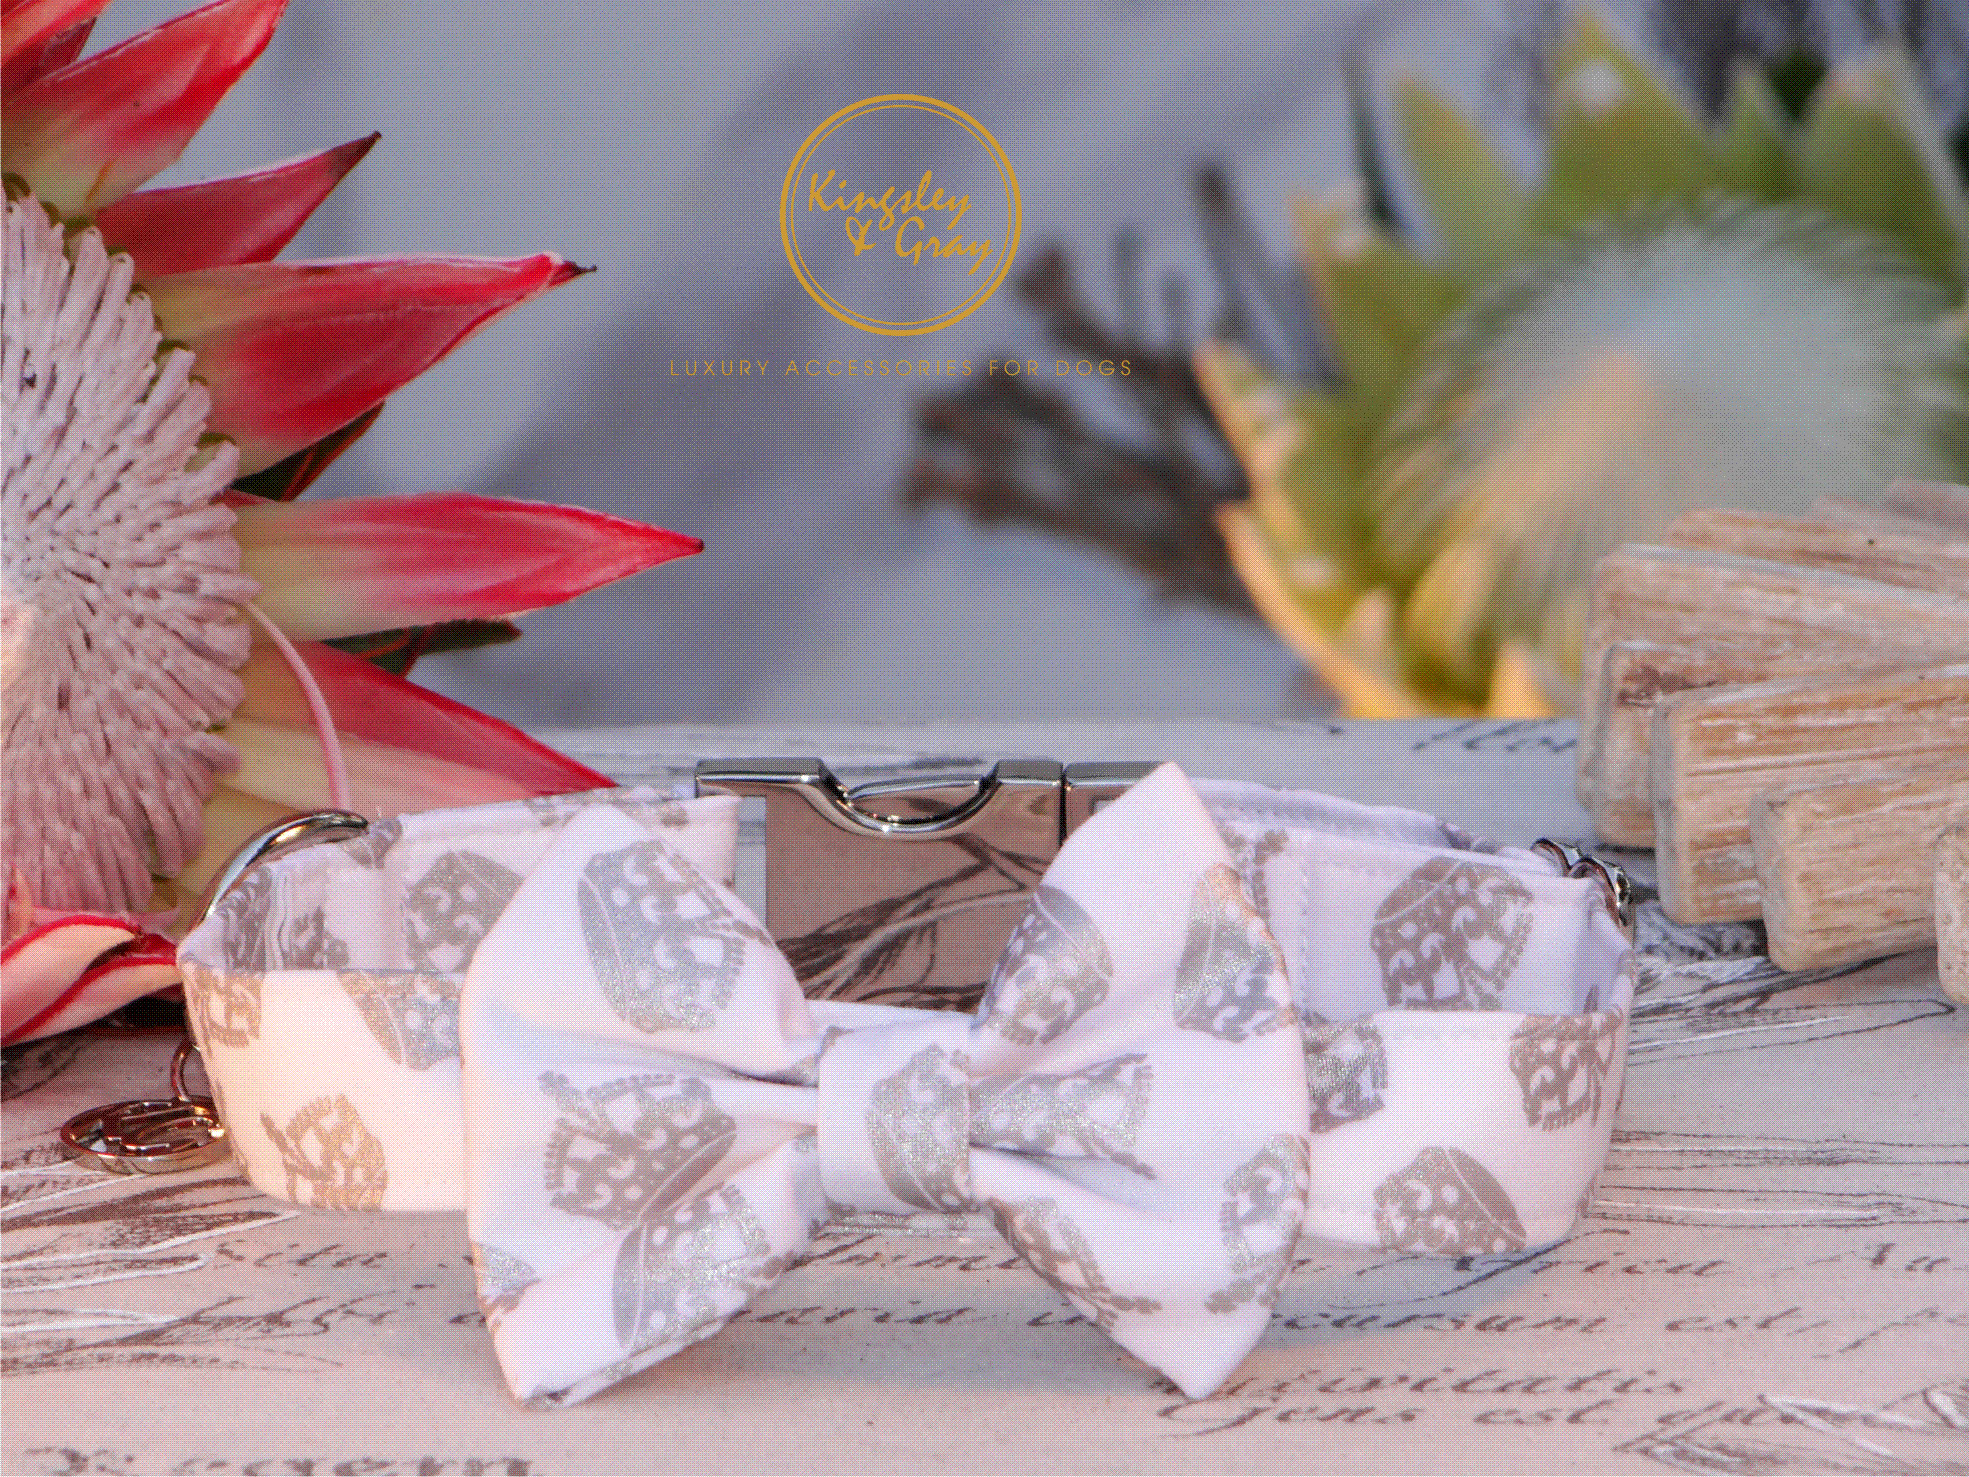 ROYAL HIGHNESS COLLAR & BOW TIE